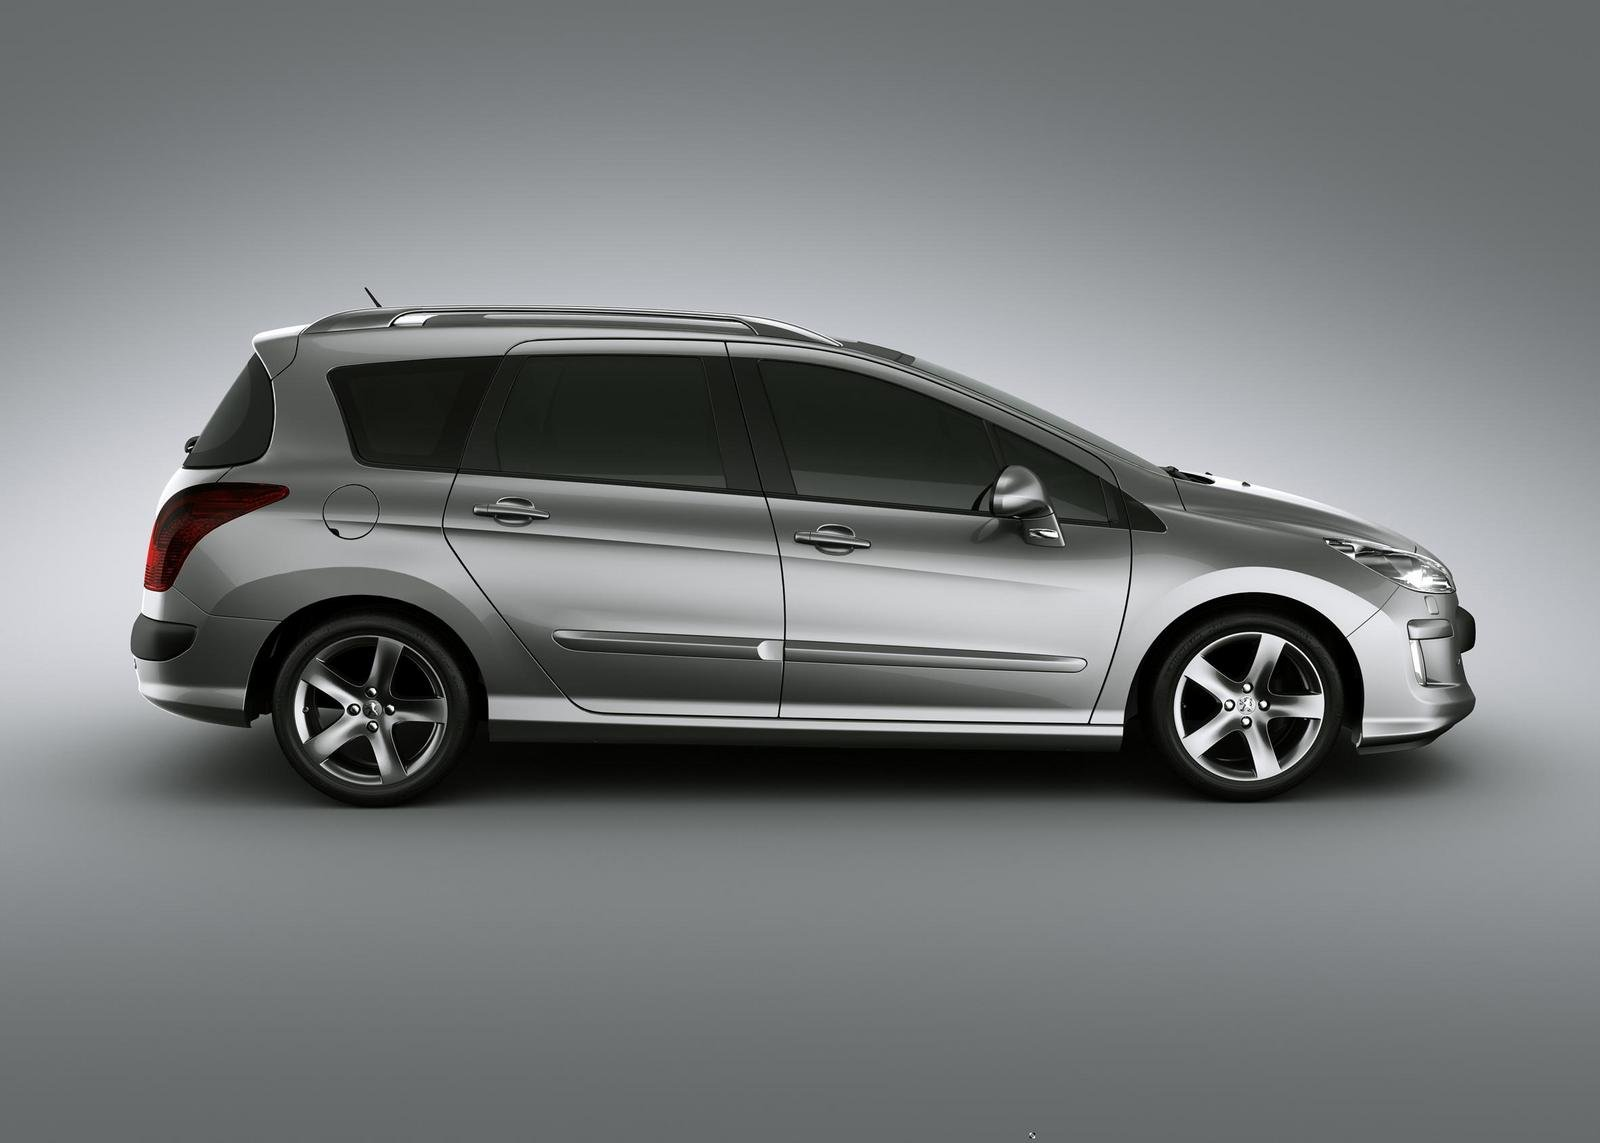 2008 peugeot 308 sw prologue picture 195200 car review top speed. Black Bedroom Furniture Sets. Home Design Ideas